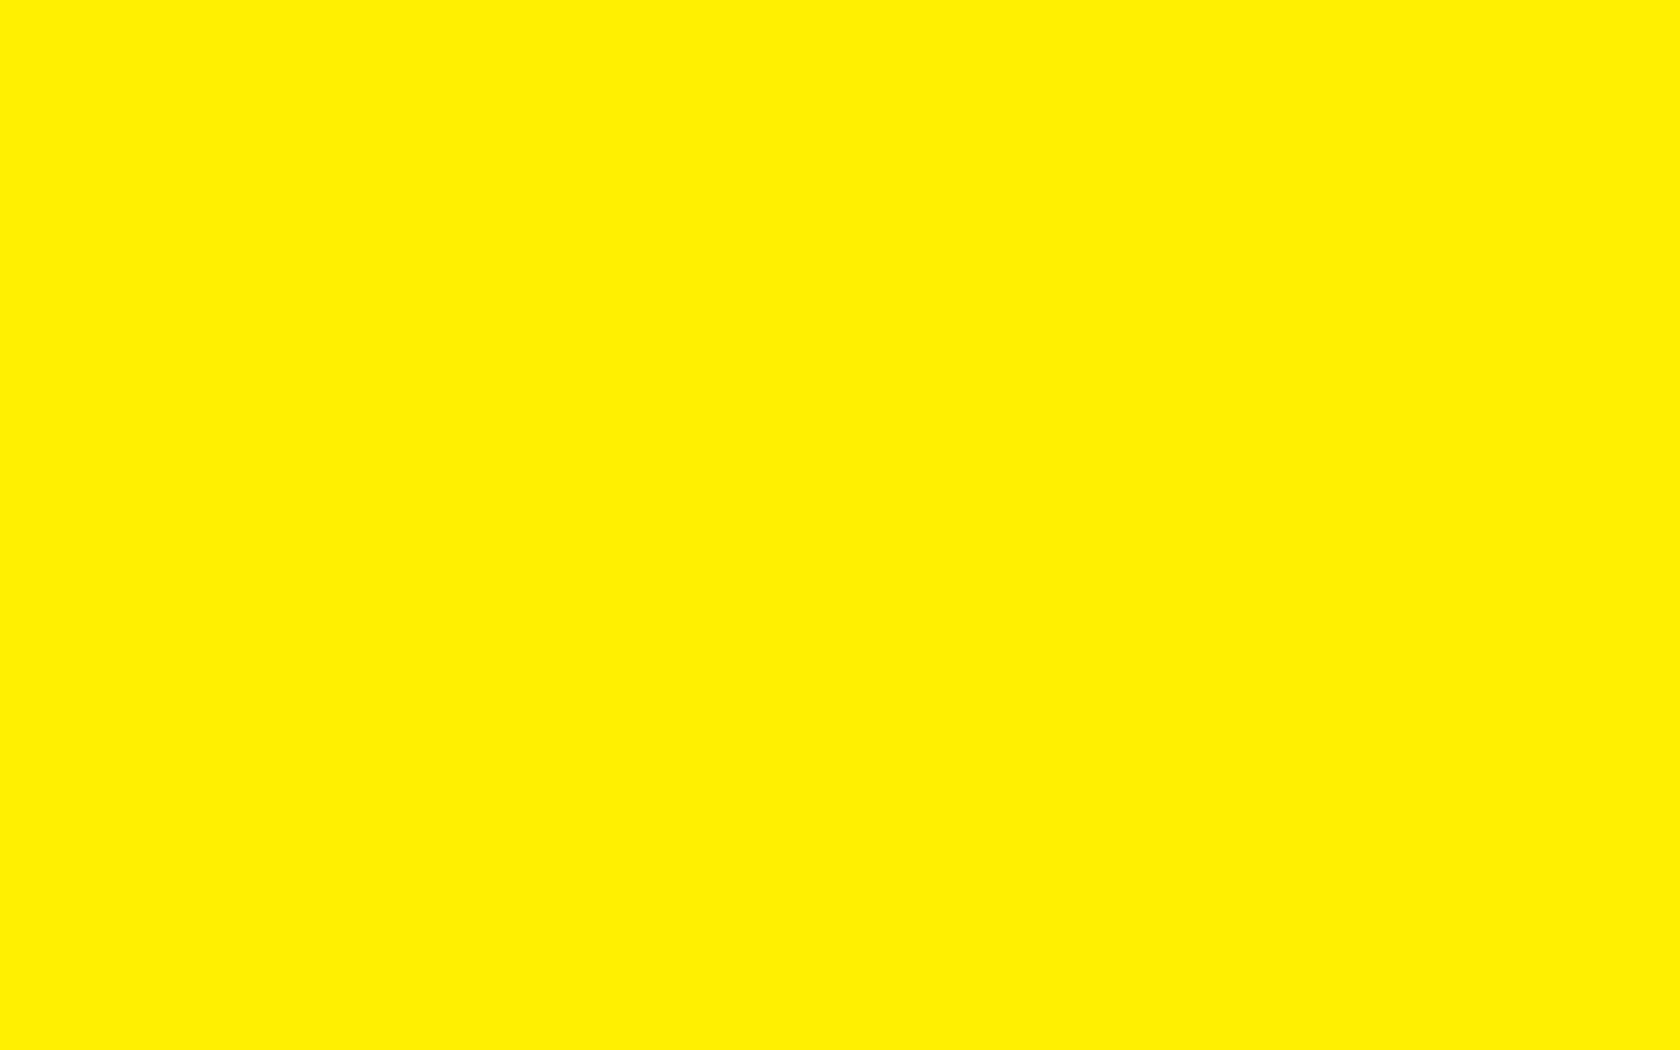 1680x1050 Yellow Rose Solid Color Background